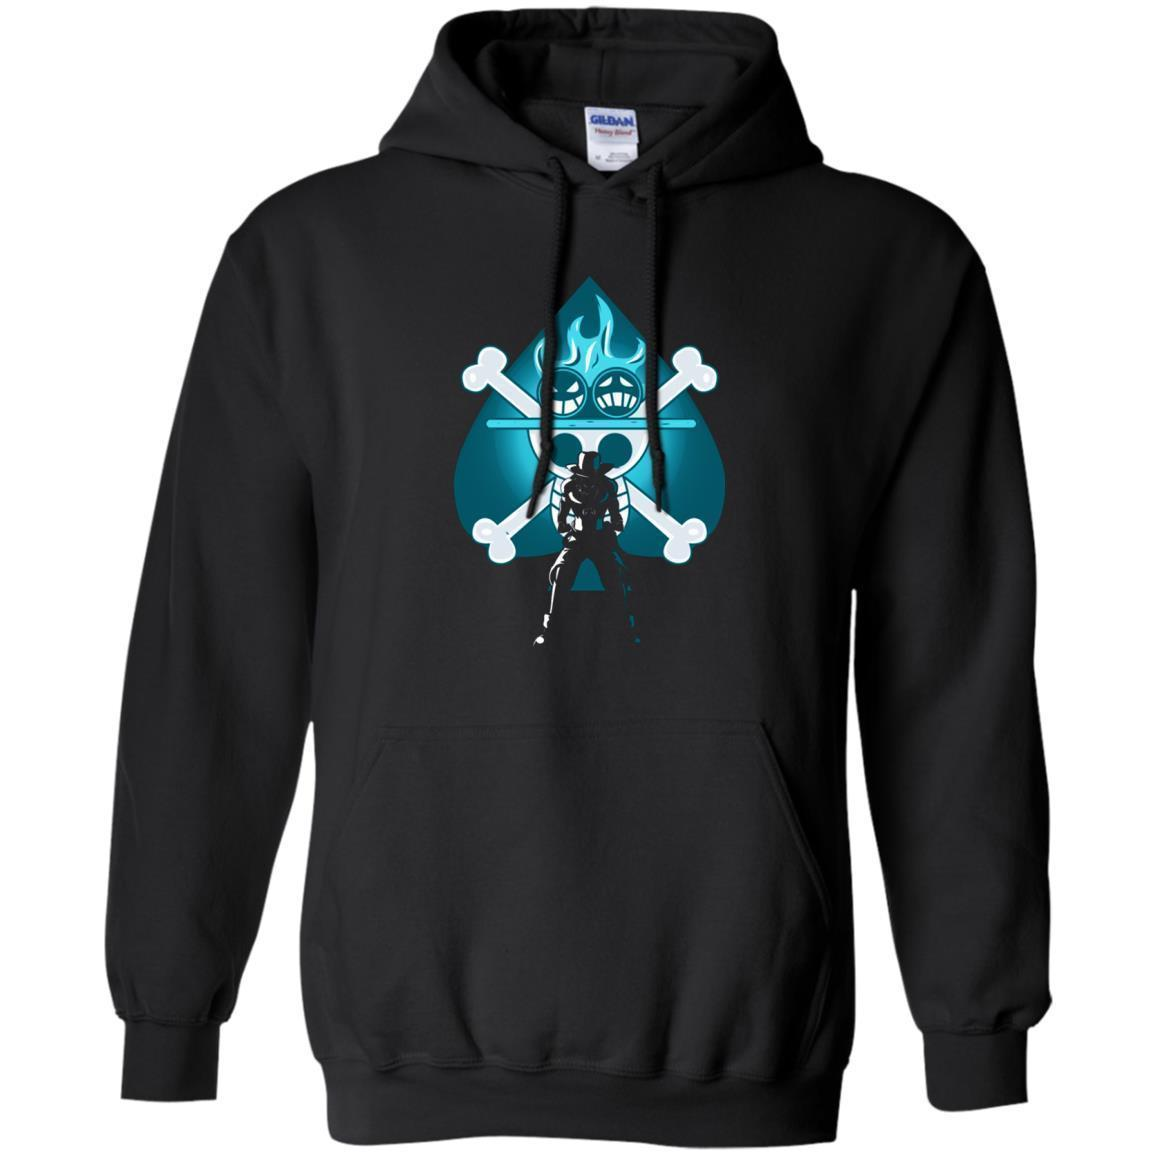 One Piece Portgas D. Ace Hoodie